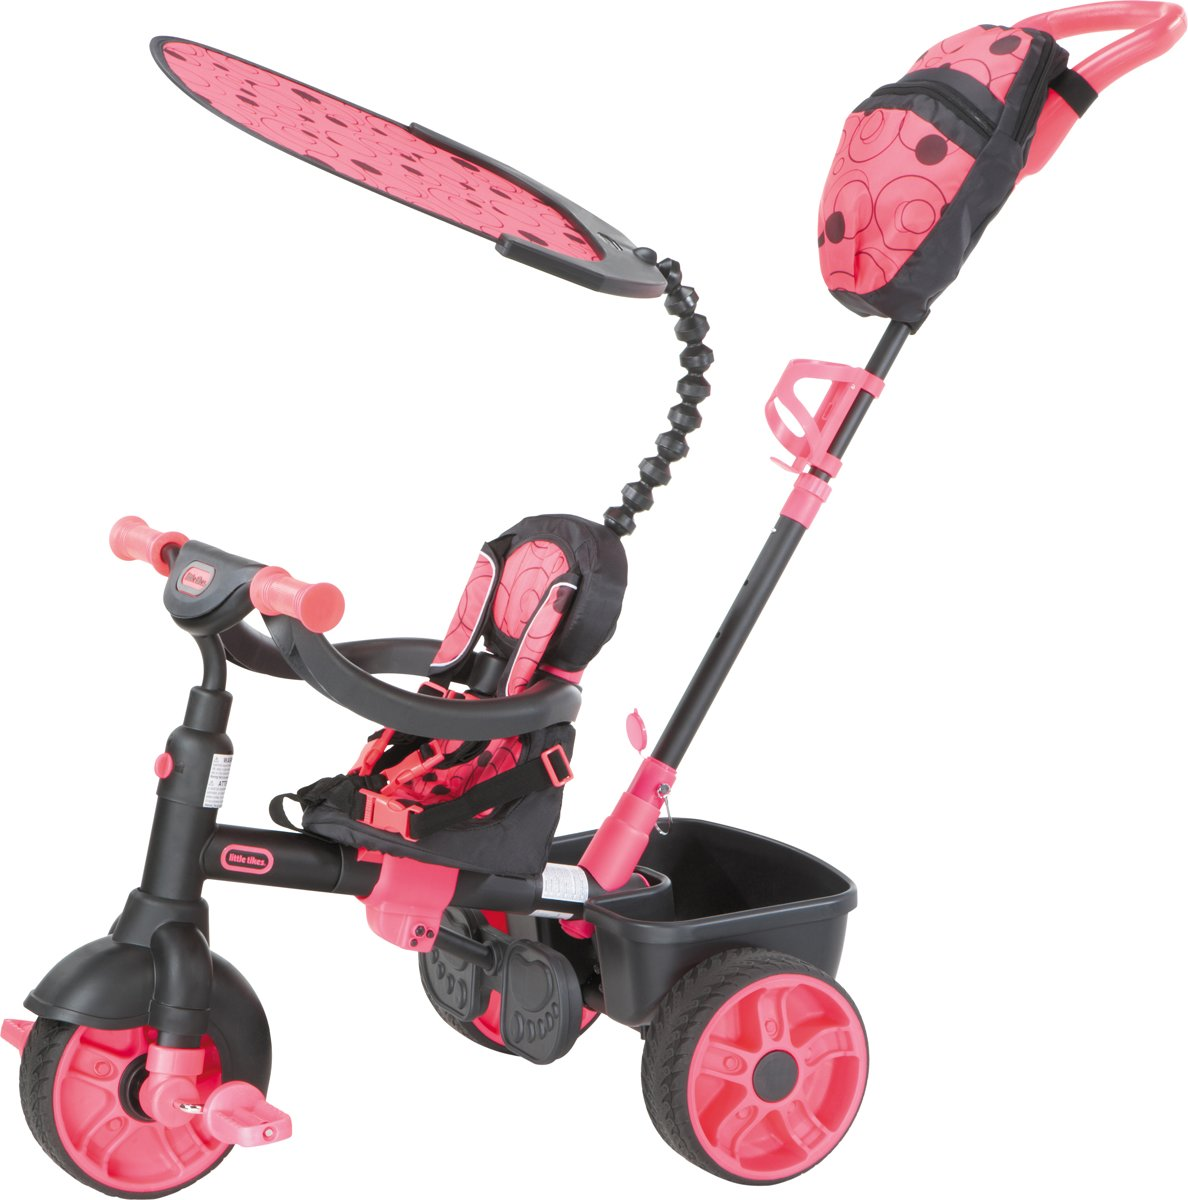 Little Tikes 4-in-1 Deluxe Editie Roze - Driewieler